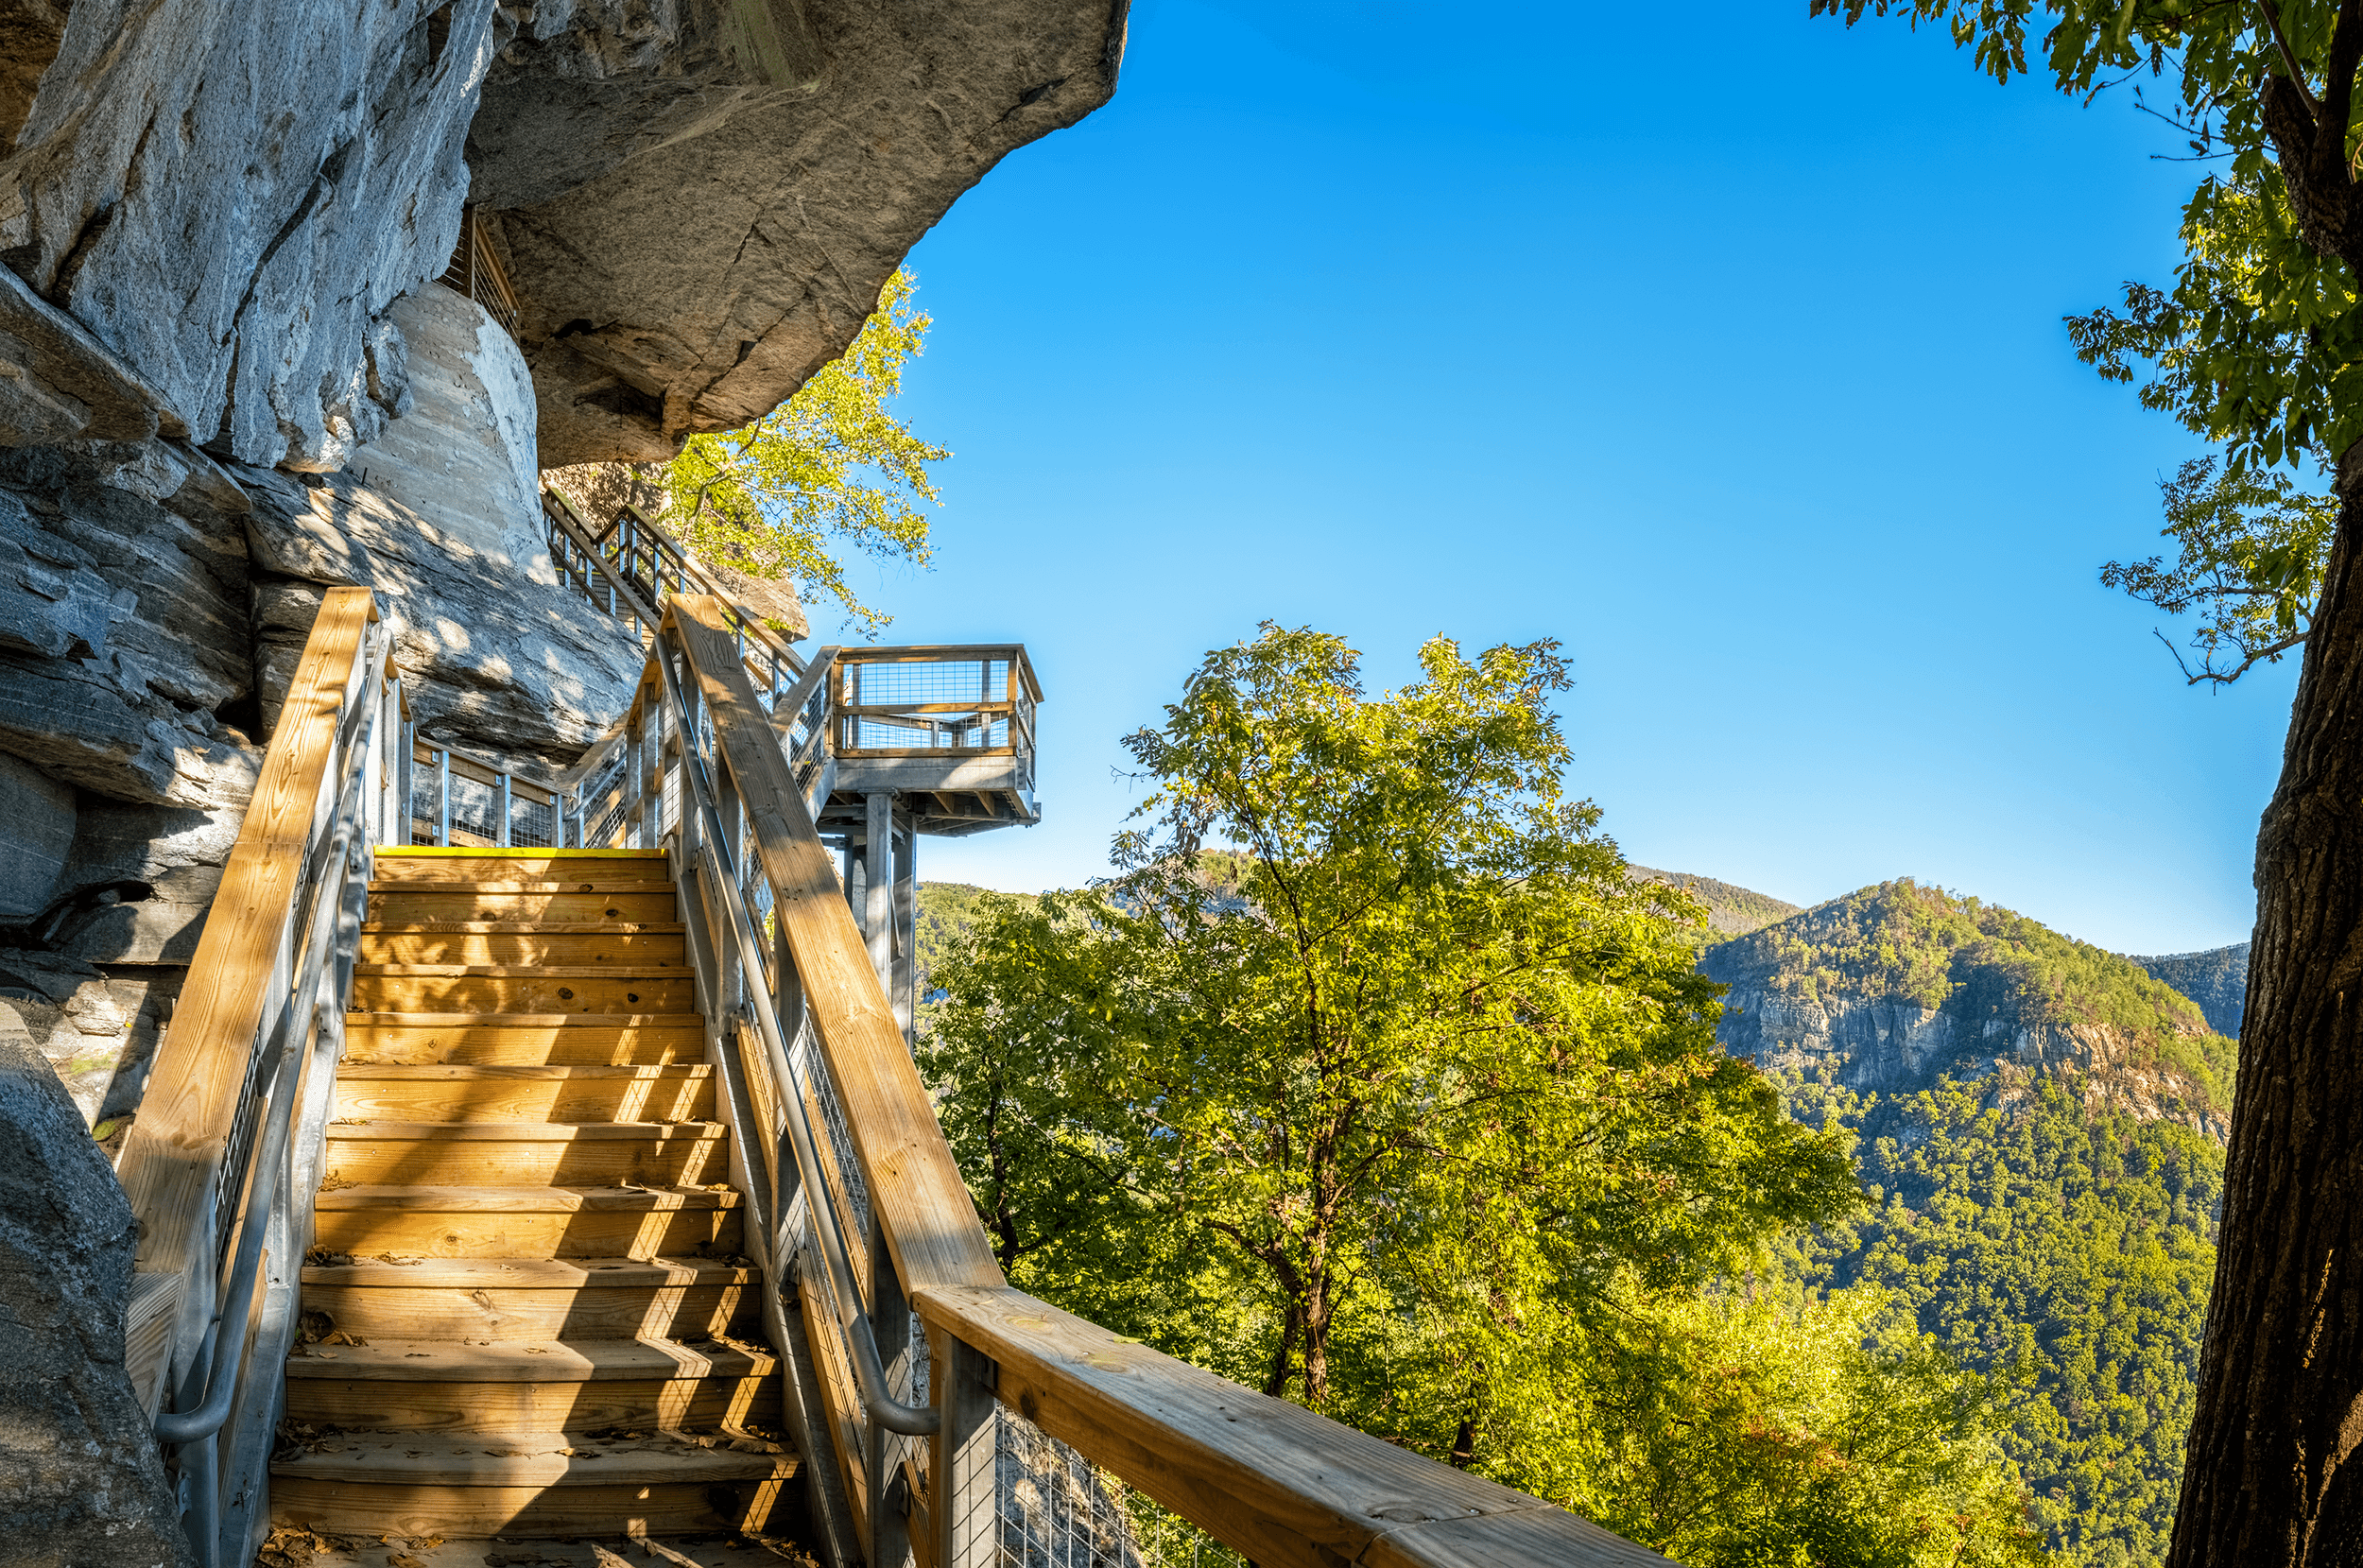 At the first fork up the staircase, the path to your right leads to the  Grotto , from where you can take a shortcut through the  Subway  around  Pulpit Rock .